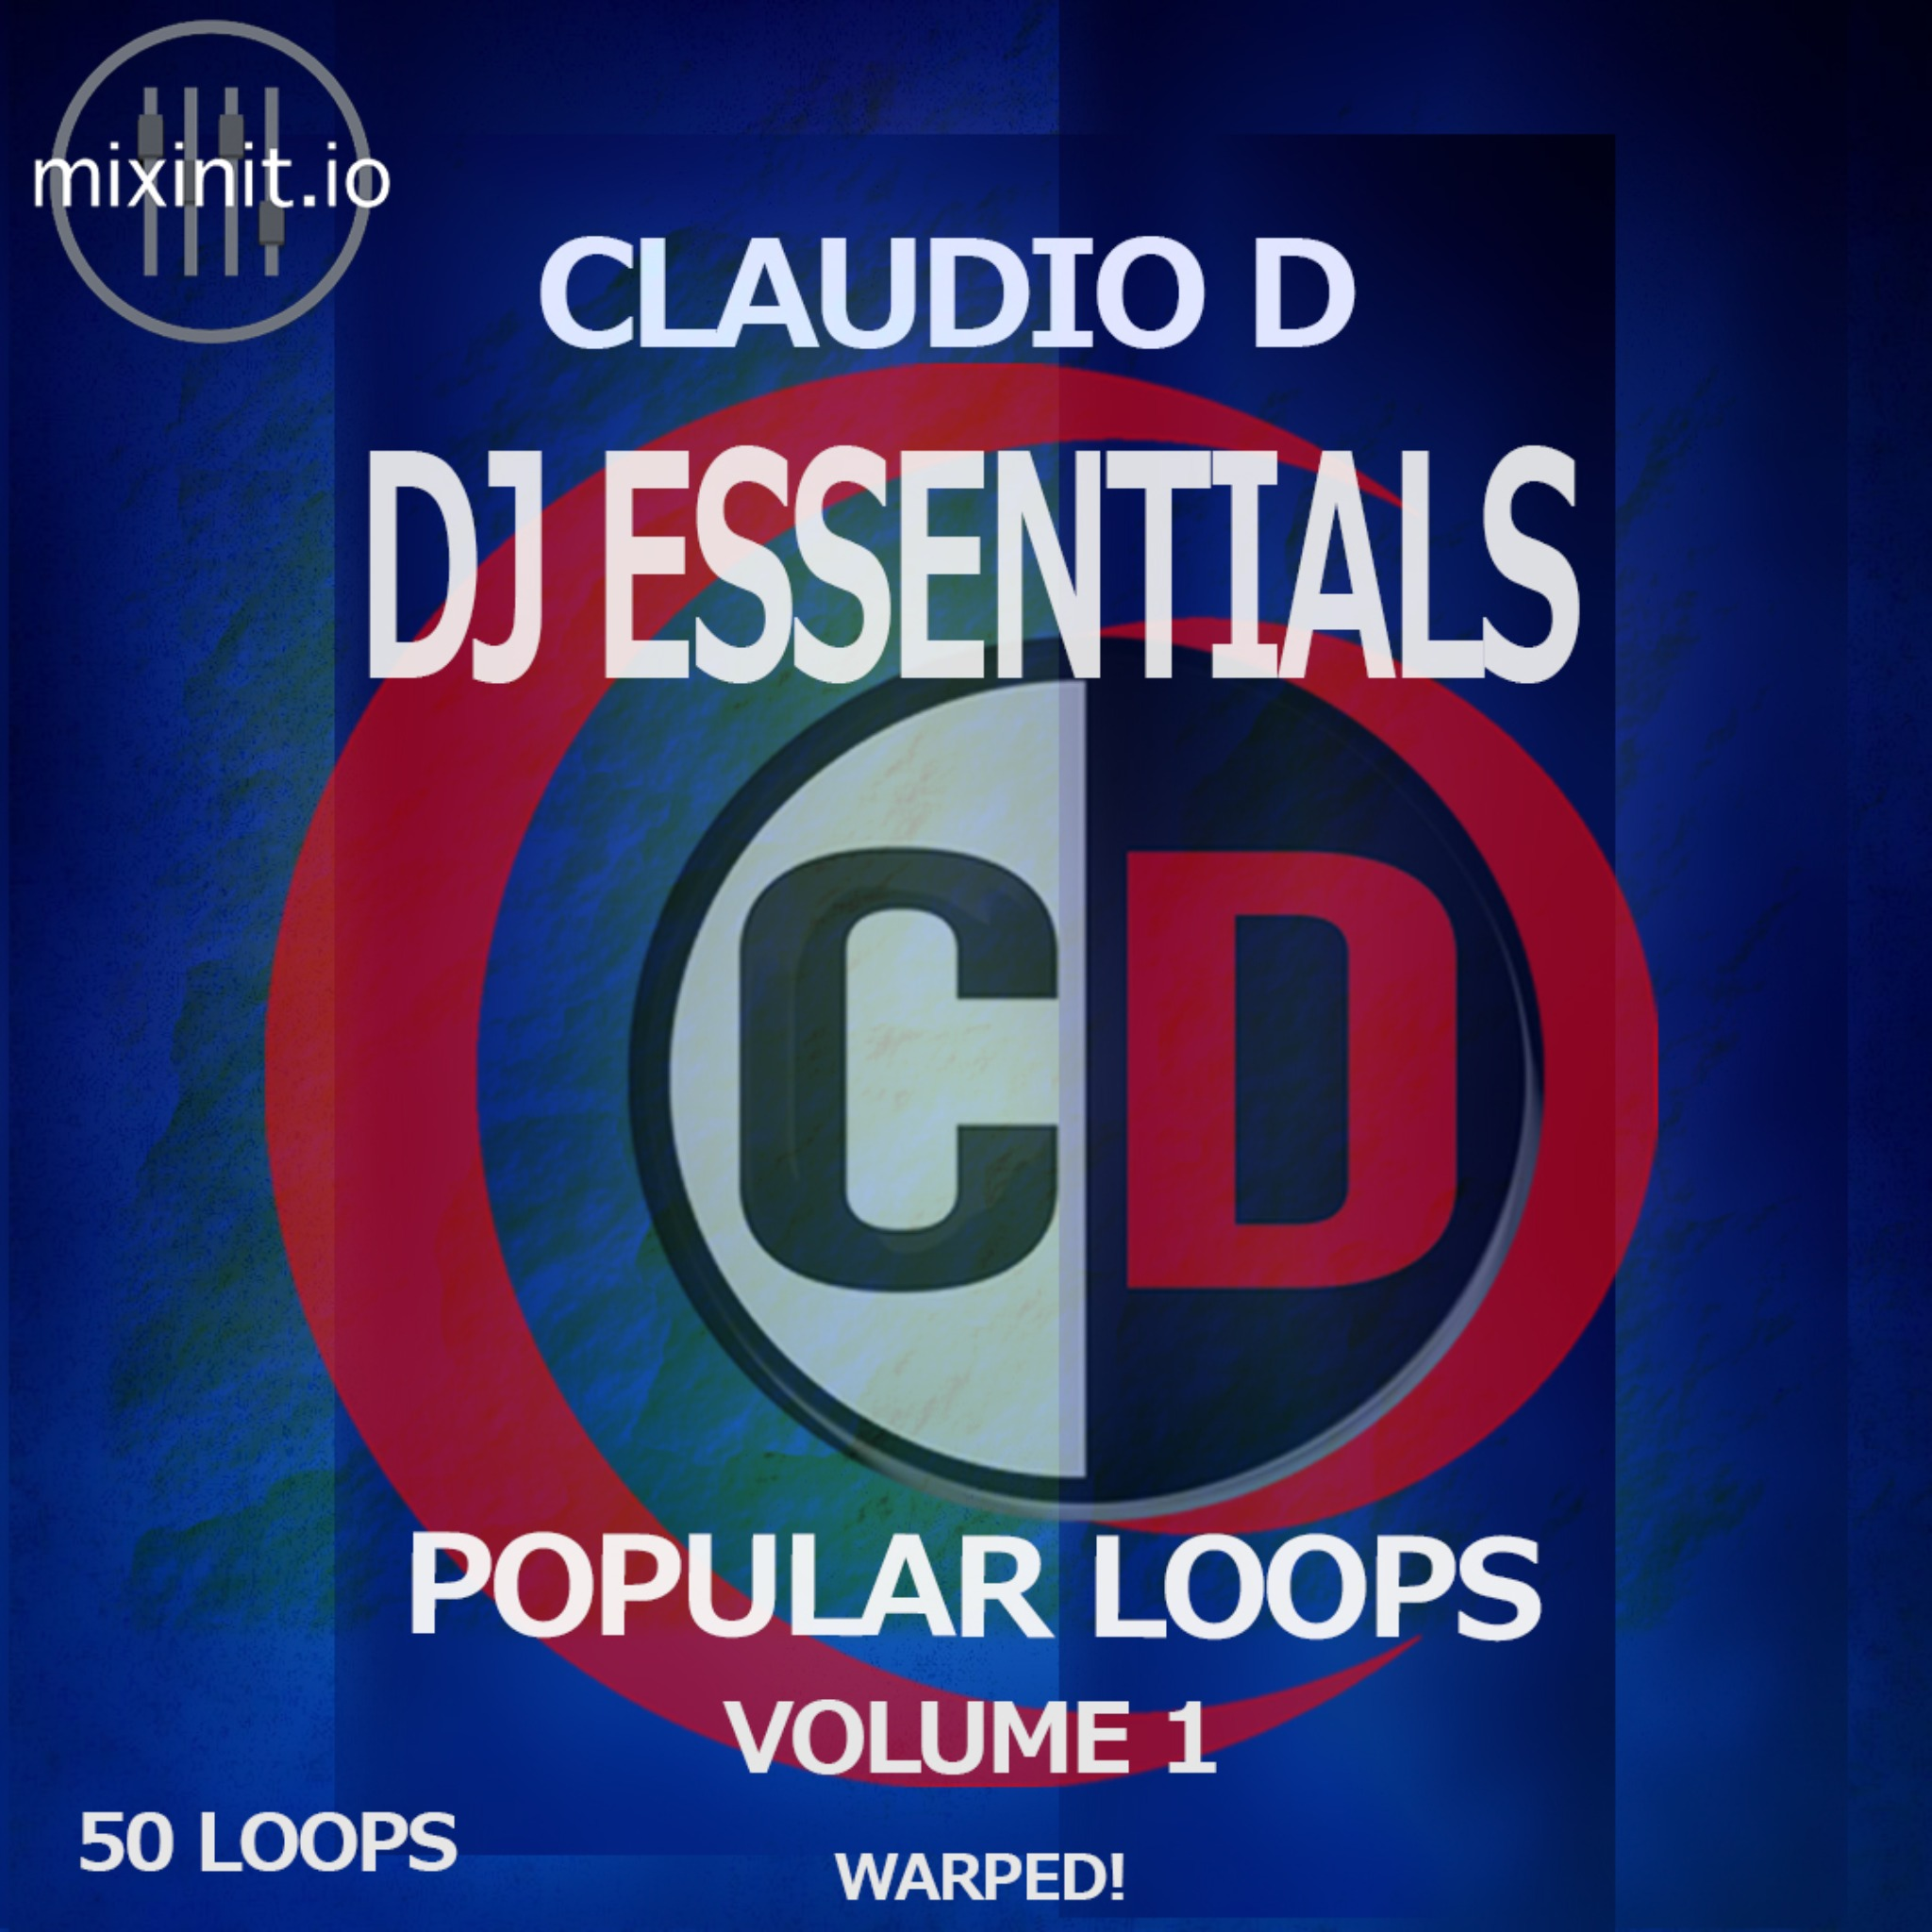 Claudio D - Popular Loops Vol. 1 (50 Instrumental Warped Loops)